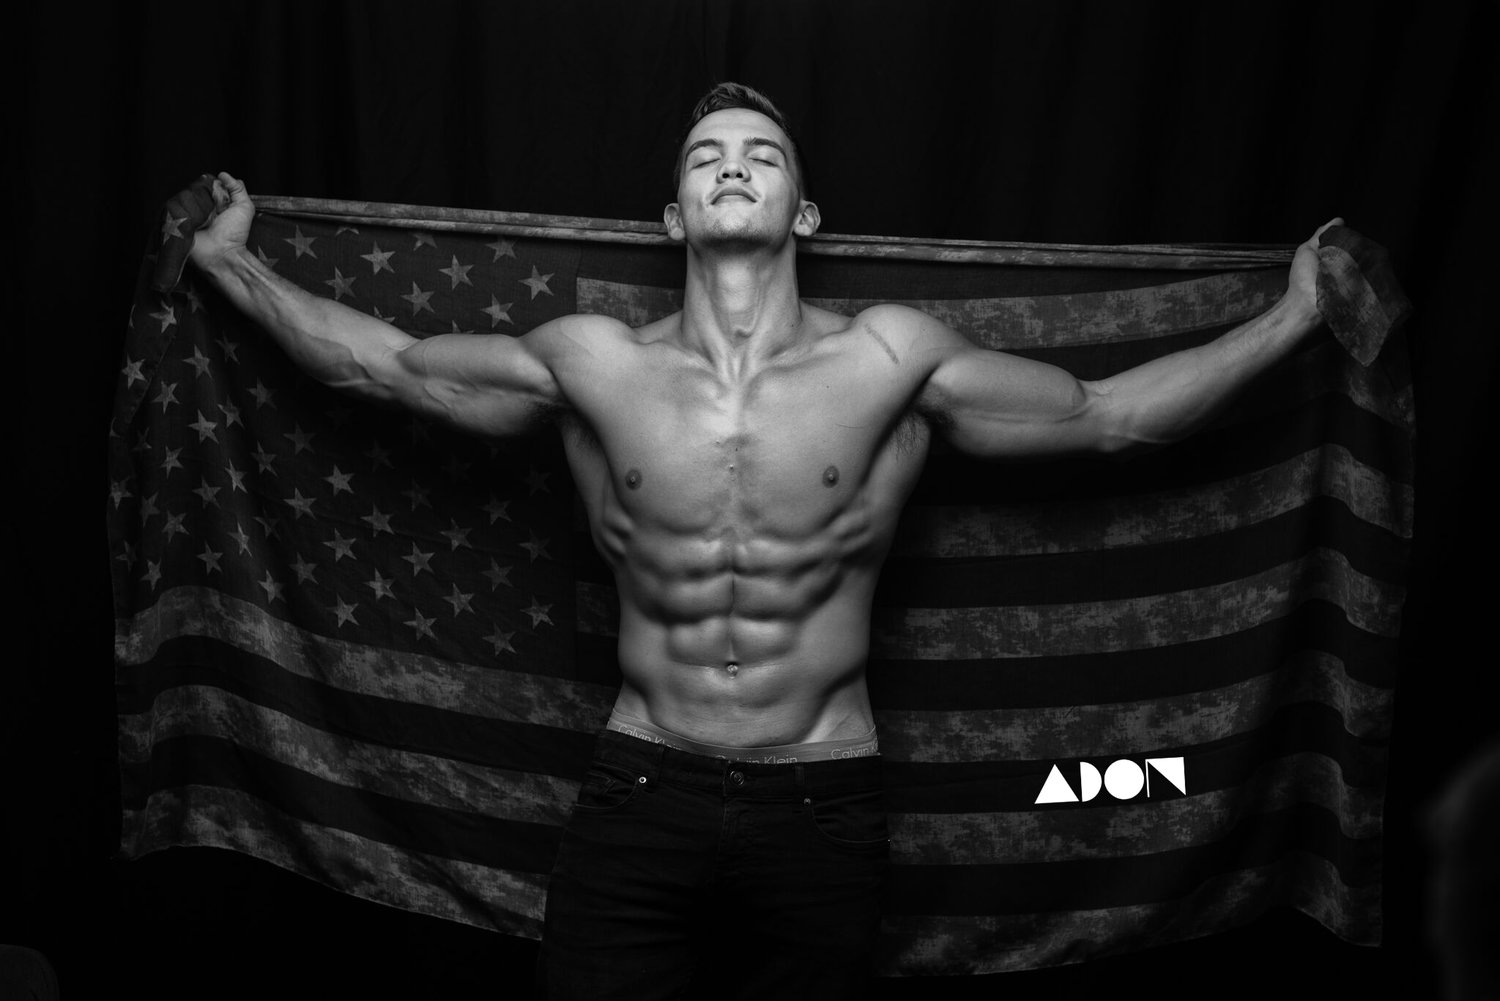 Adon Exclusive: Model Calvin Boling By Kevin Camp